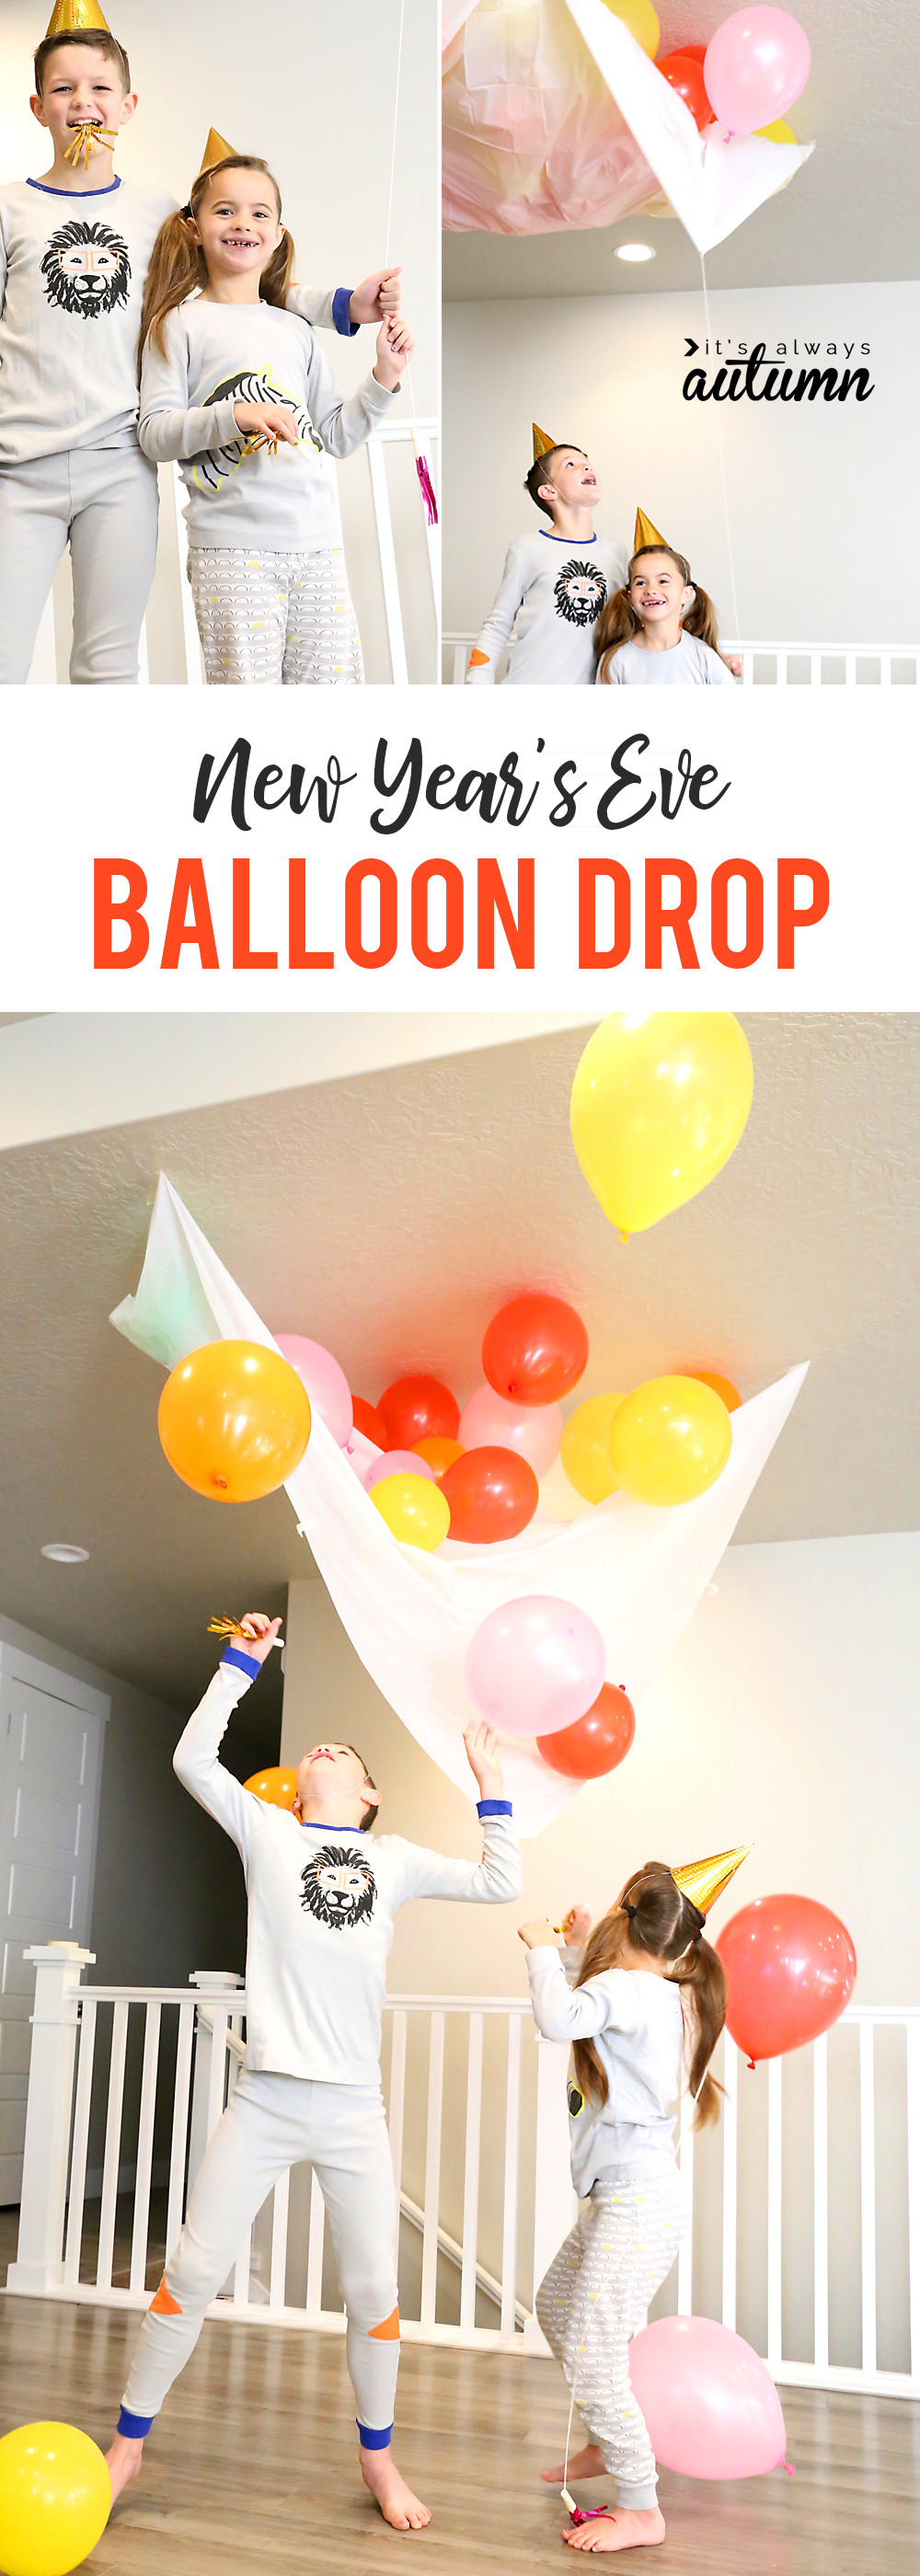 New Year\'s Eve balloon drop at home; kids playing with balloons